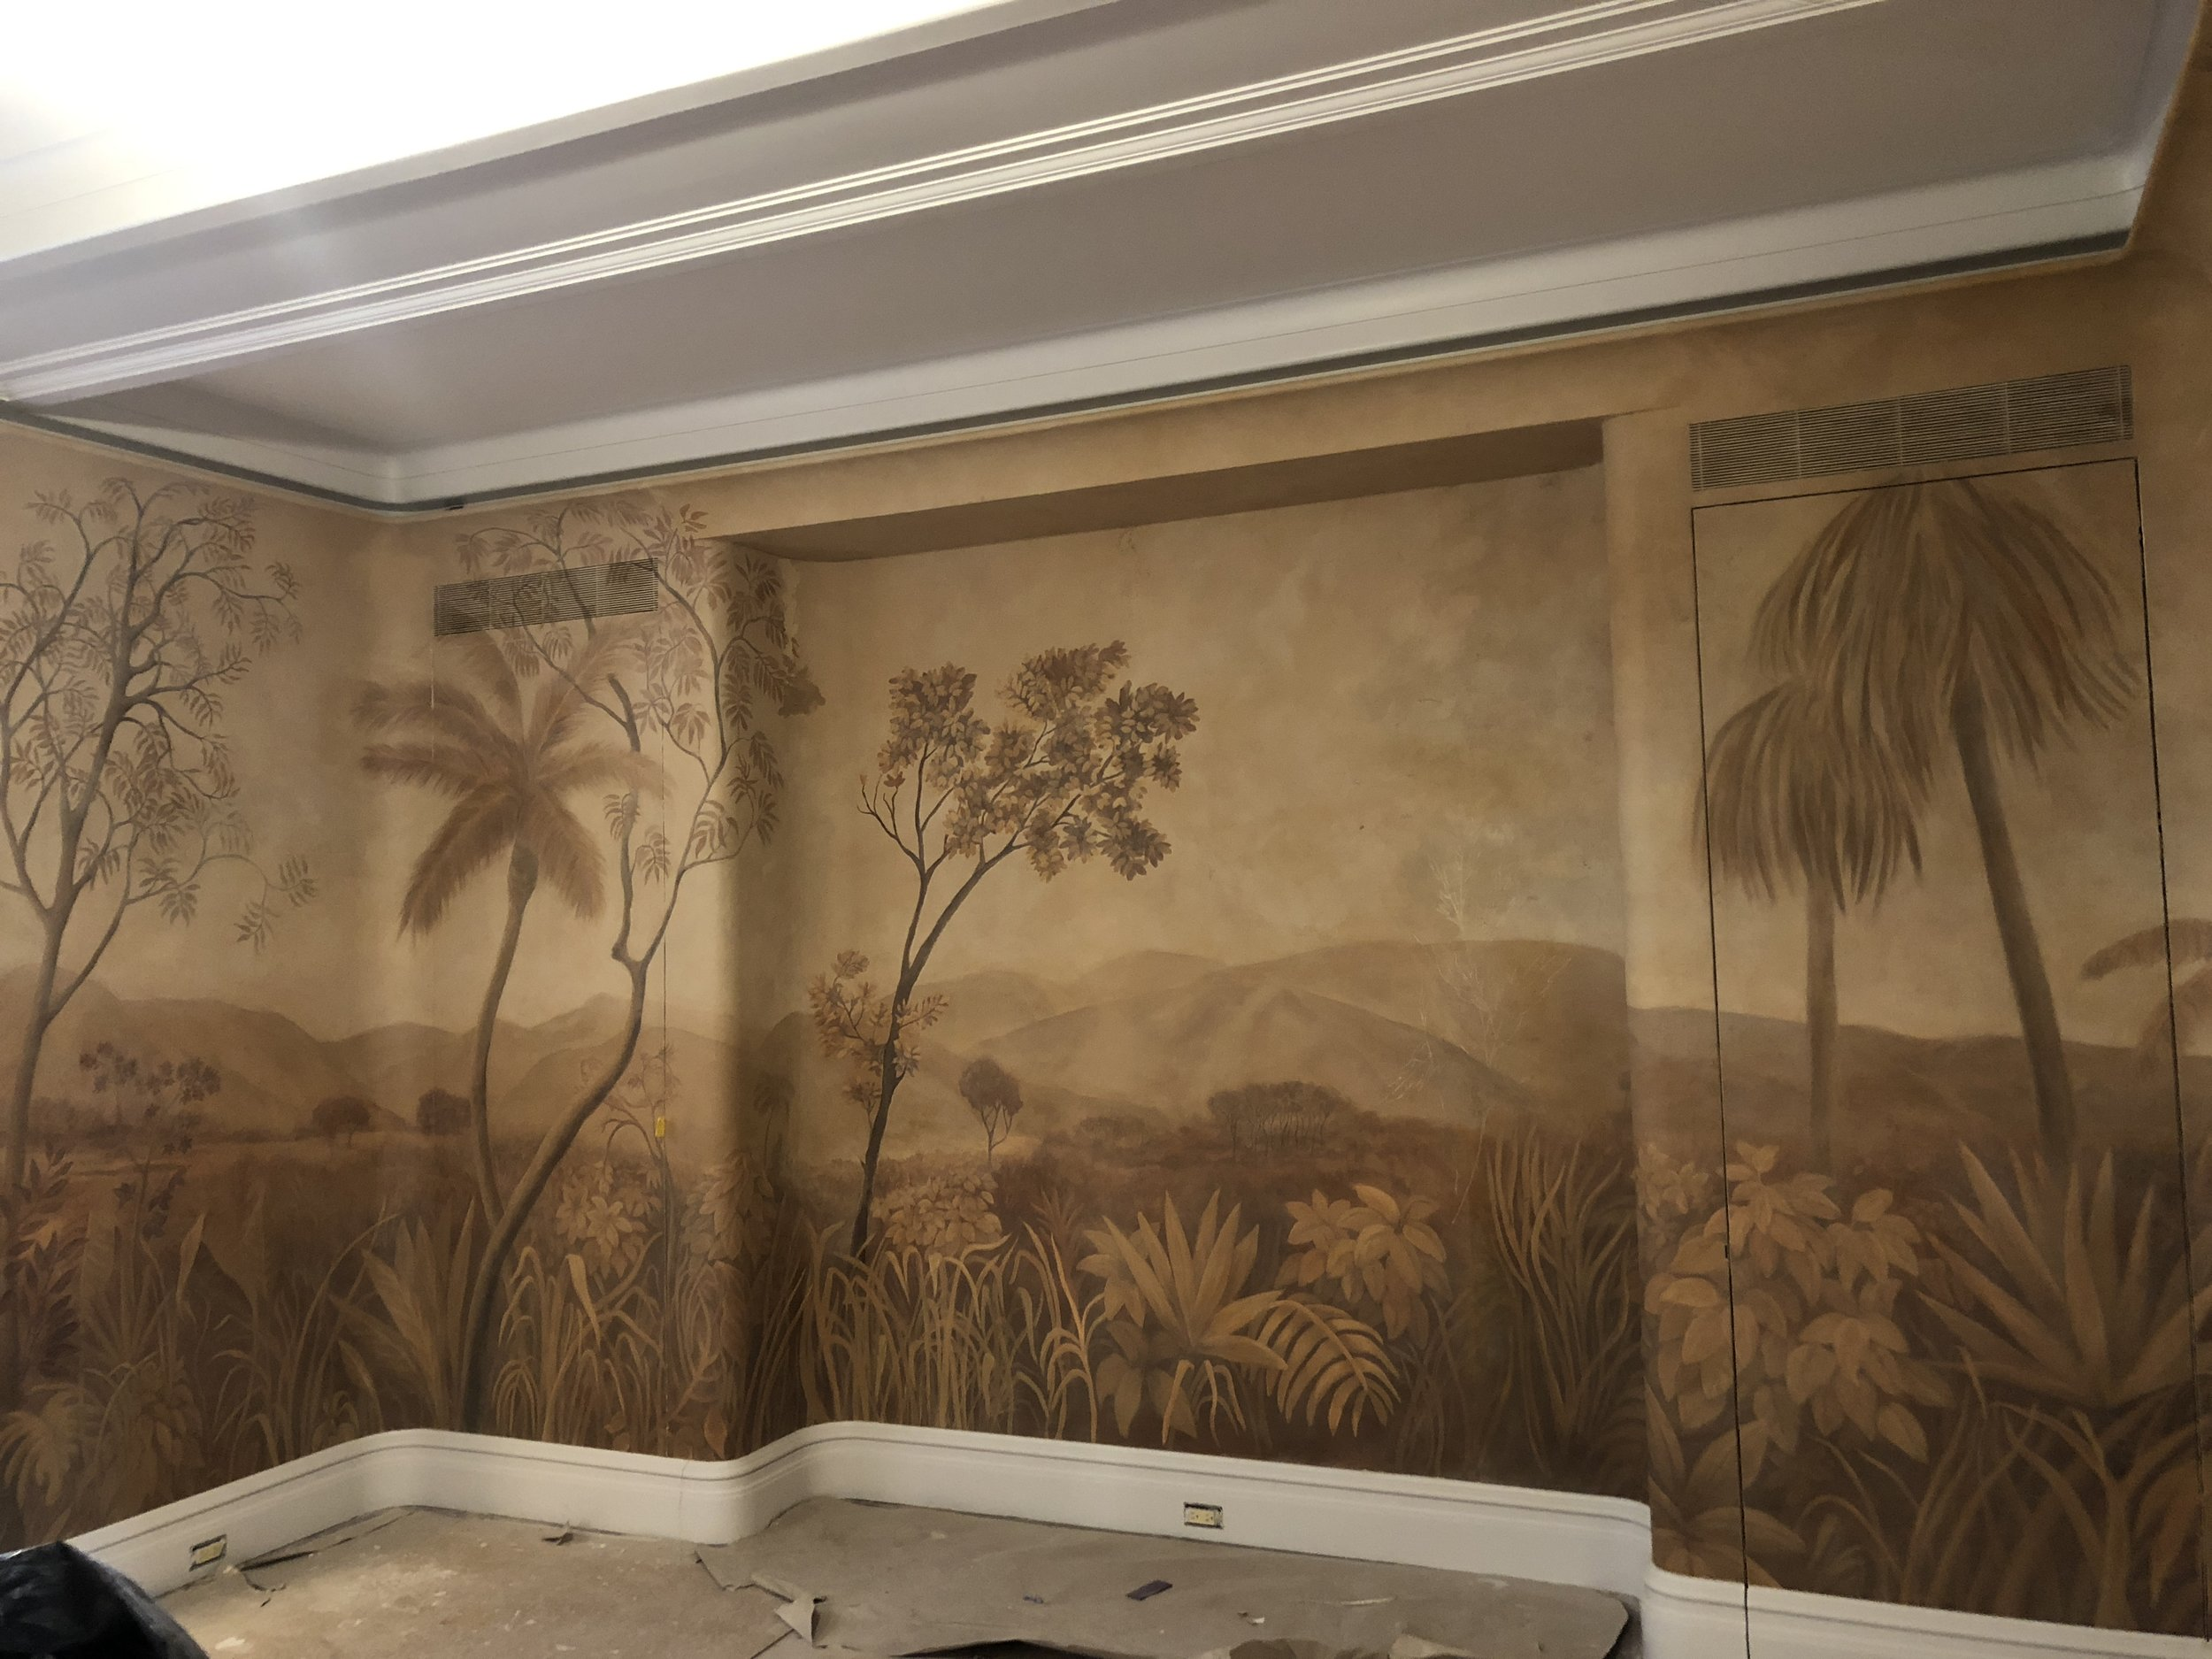 PARK AVENUE RESIDENCE: Mural In progress; site specific hand painted landscape on burlap and plaster